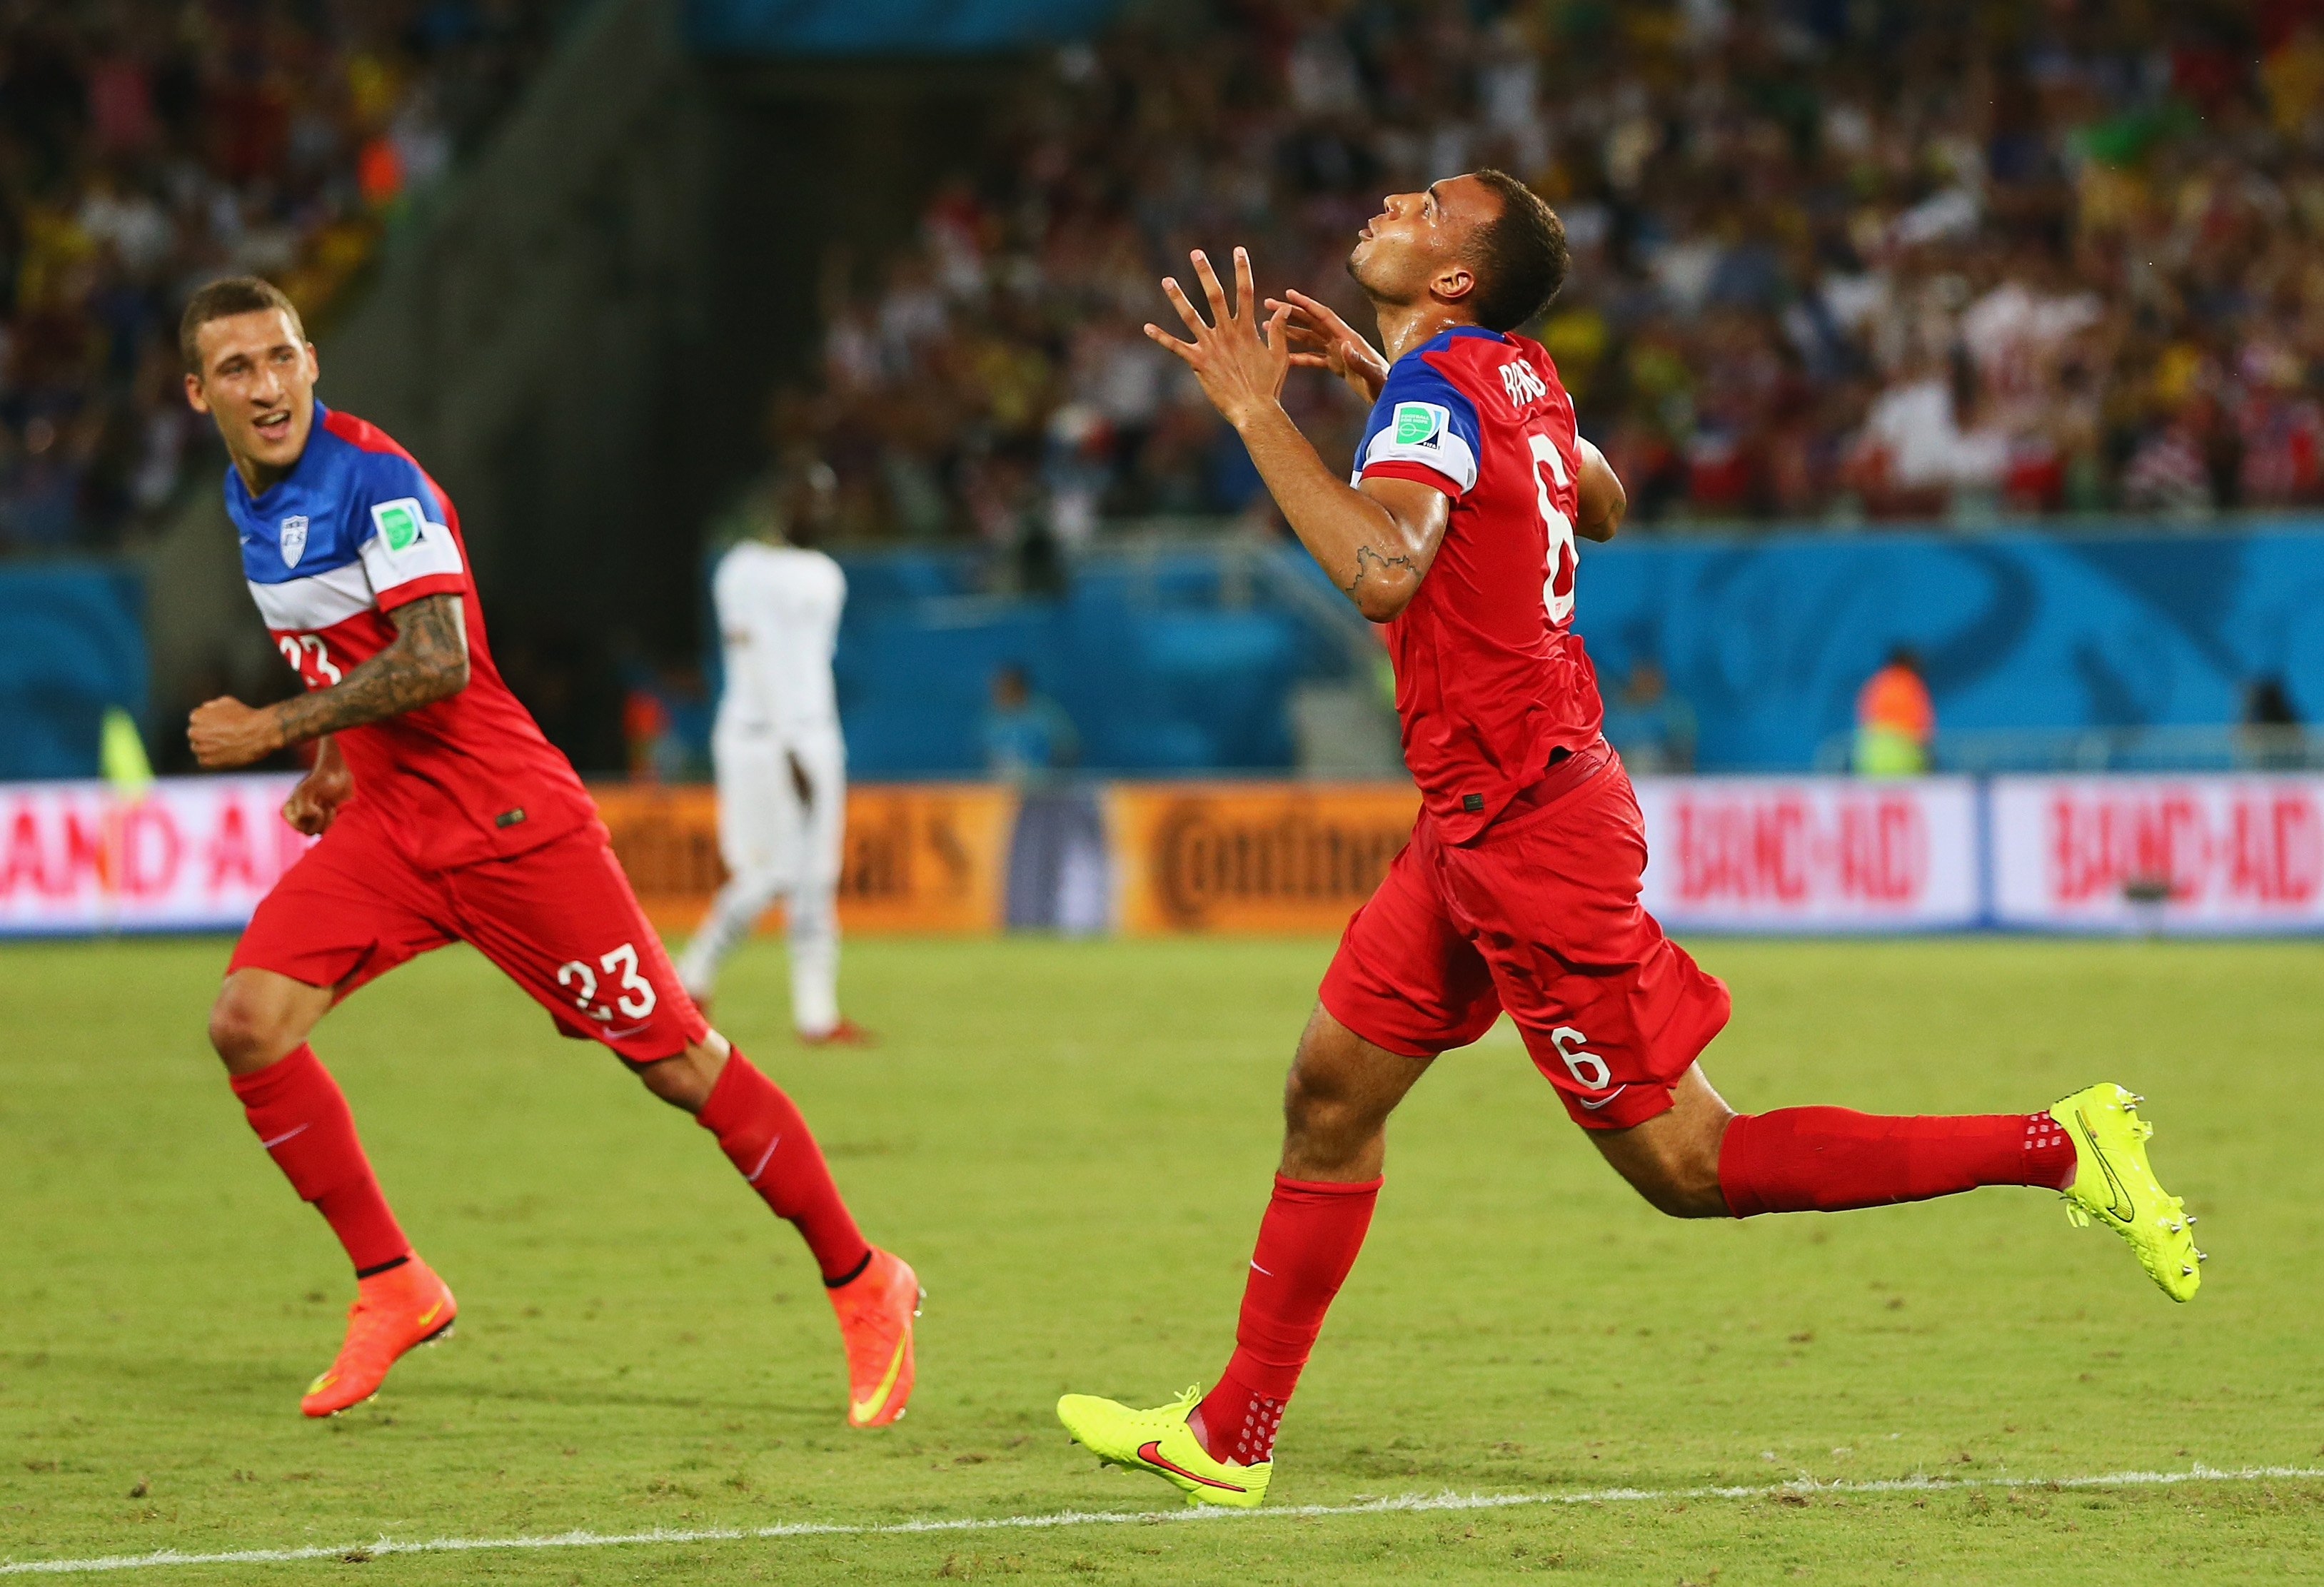 From right: John Brooks of the United States celebrates scoring his team's second goal with Fabian Johnson during the 2014 FIFA World Cup Brazil Group G match between Ghana and the United States at Estadio das Dunas on June 16, 2014 in Natal, Brazil.